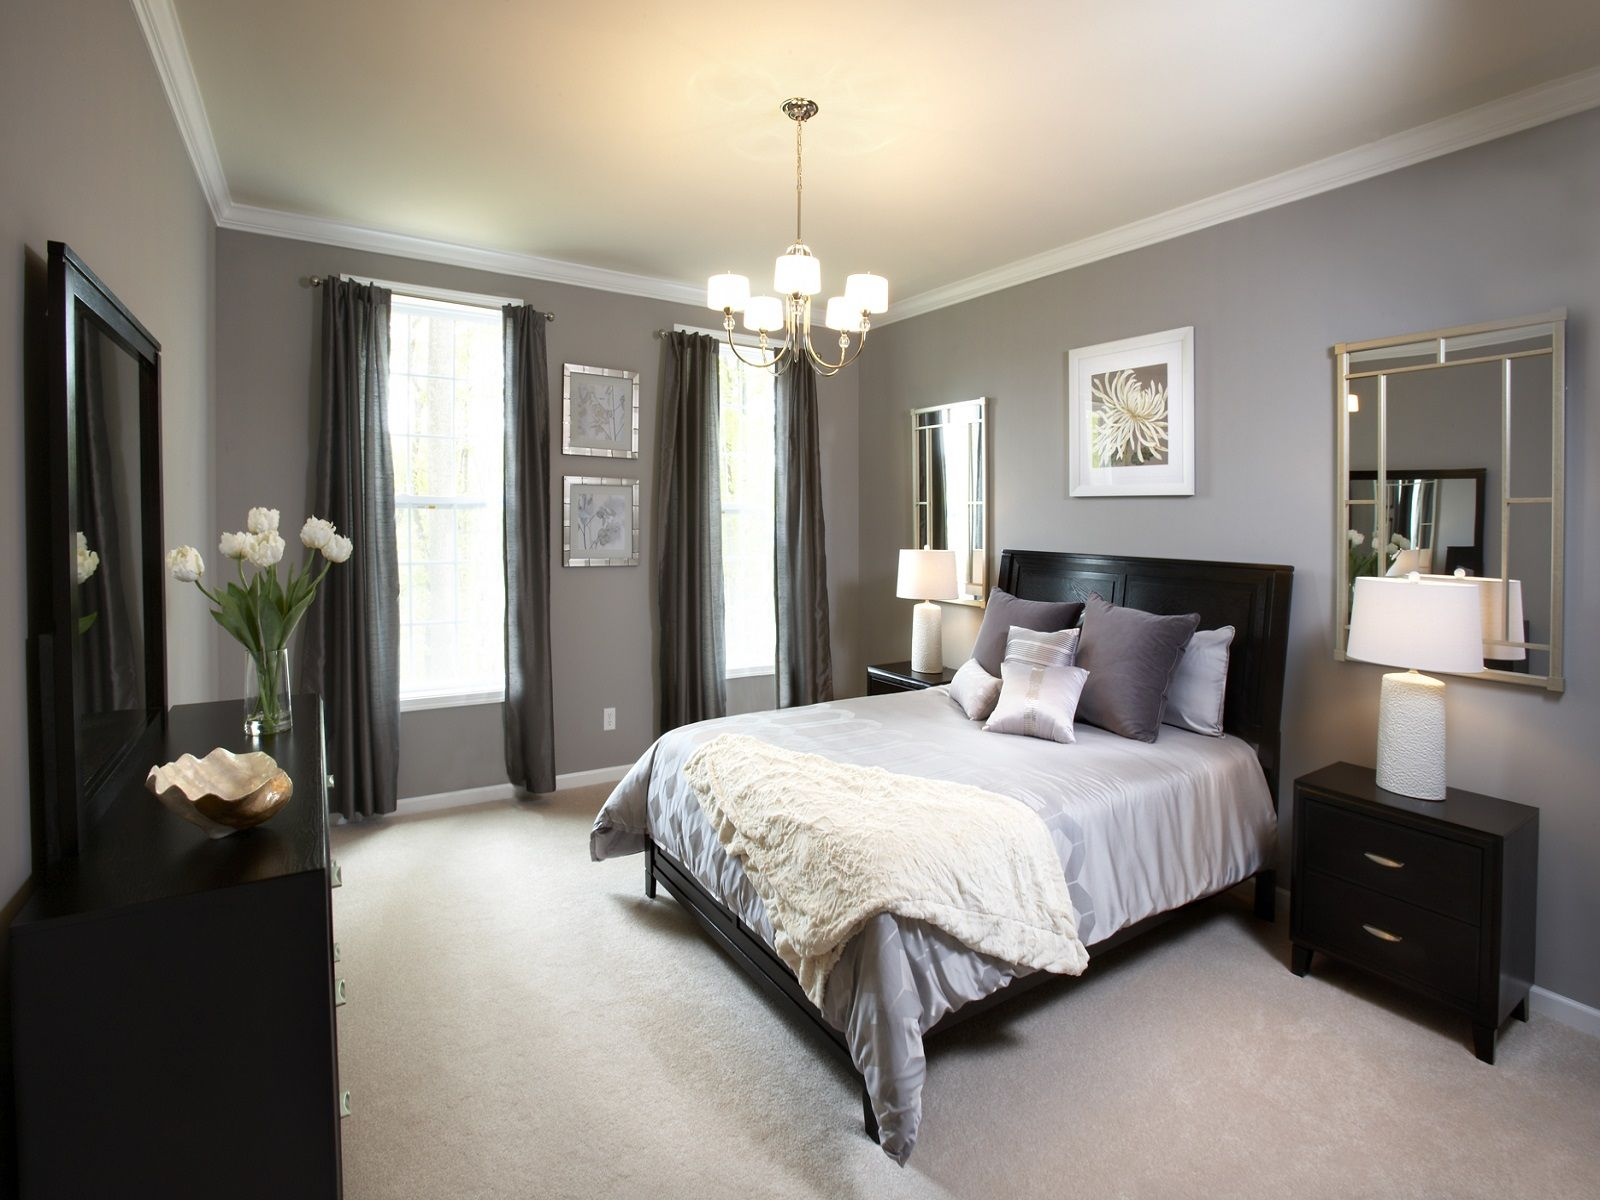 Awesome Bedroom Shade Chandelier Over White Bedding Ideas With Black Wooden Base Bed Frames As Well A Gray Master Bedroom Remodel Bedroom Master Bedrooms Decor